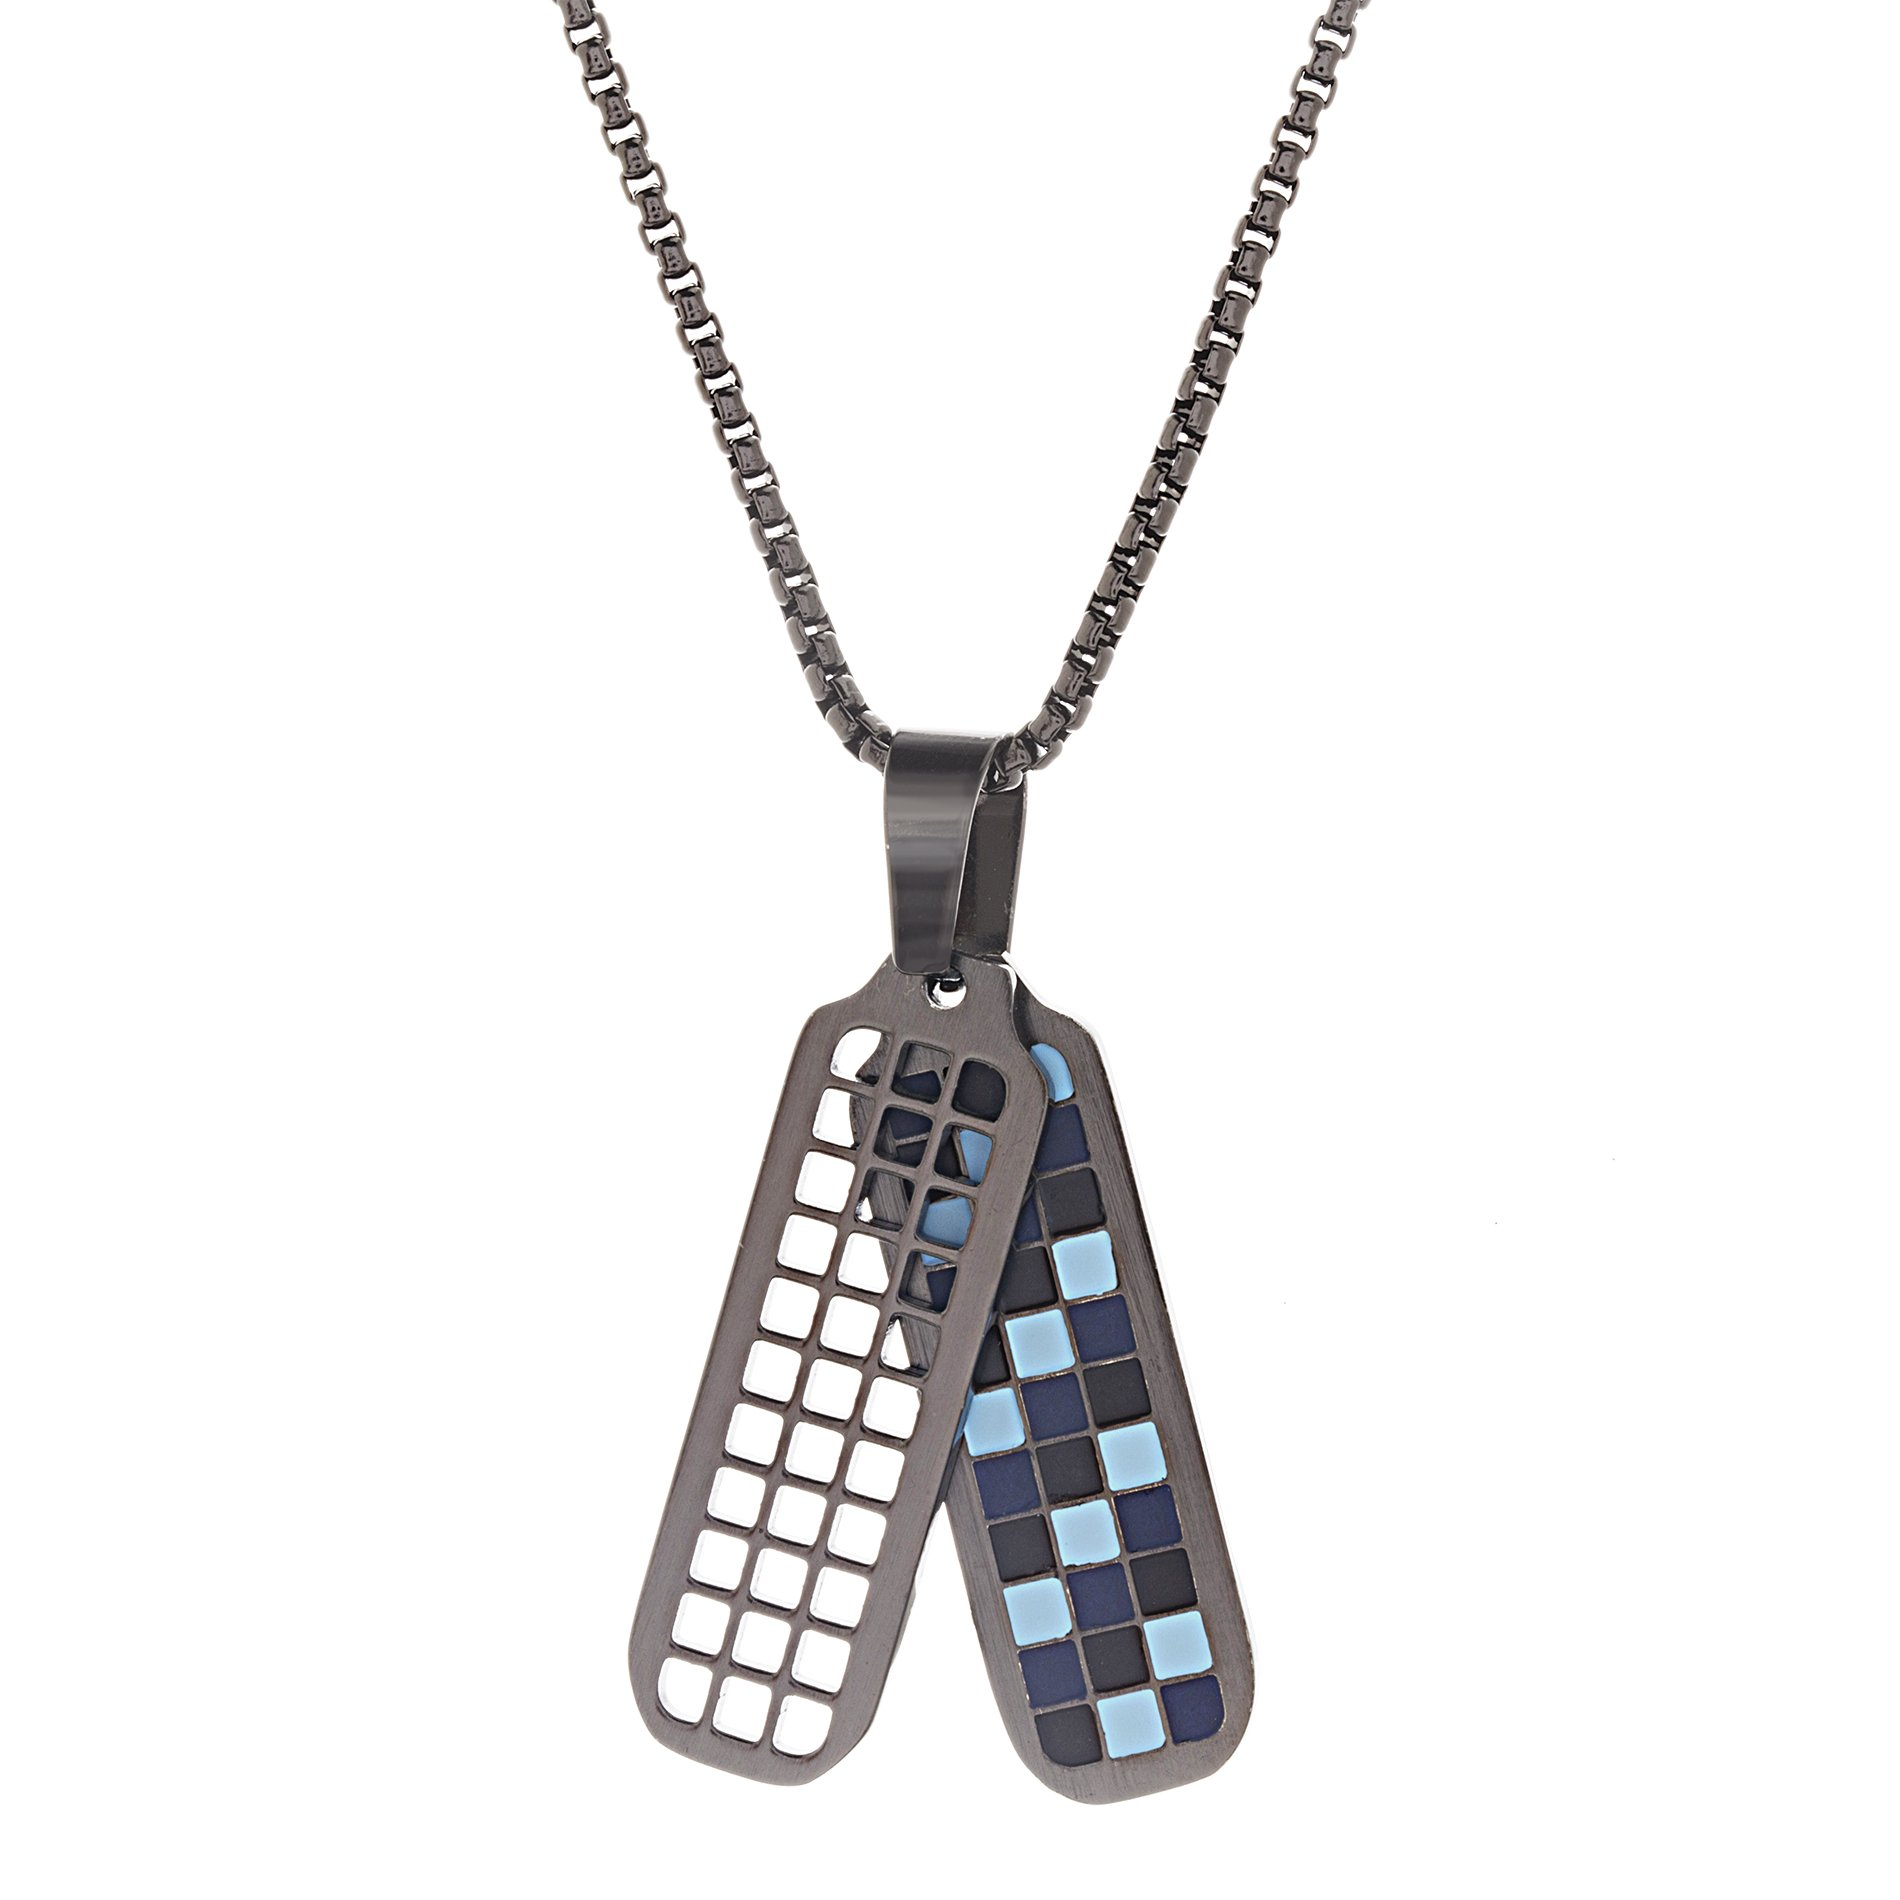 Ben Sherman Men's Black/Light Blue Checkerboard Dog Tag Necklace with Stainless Steel Black IP Roll Chain, 26